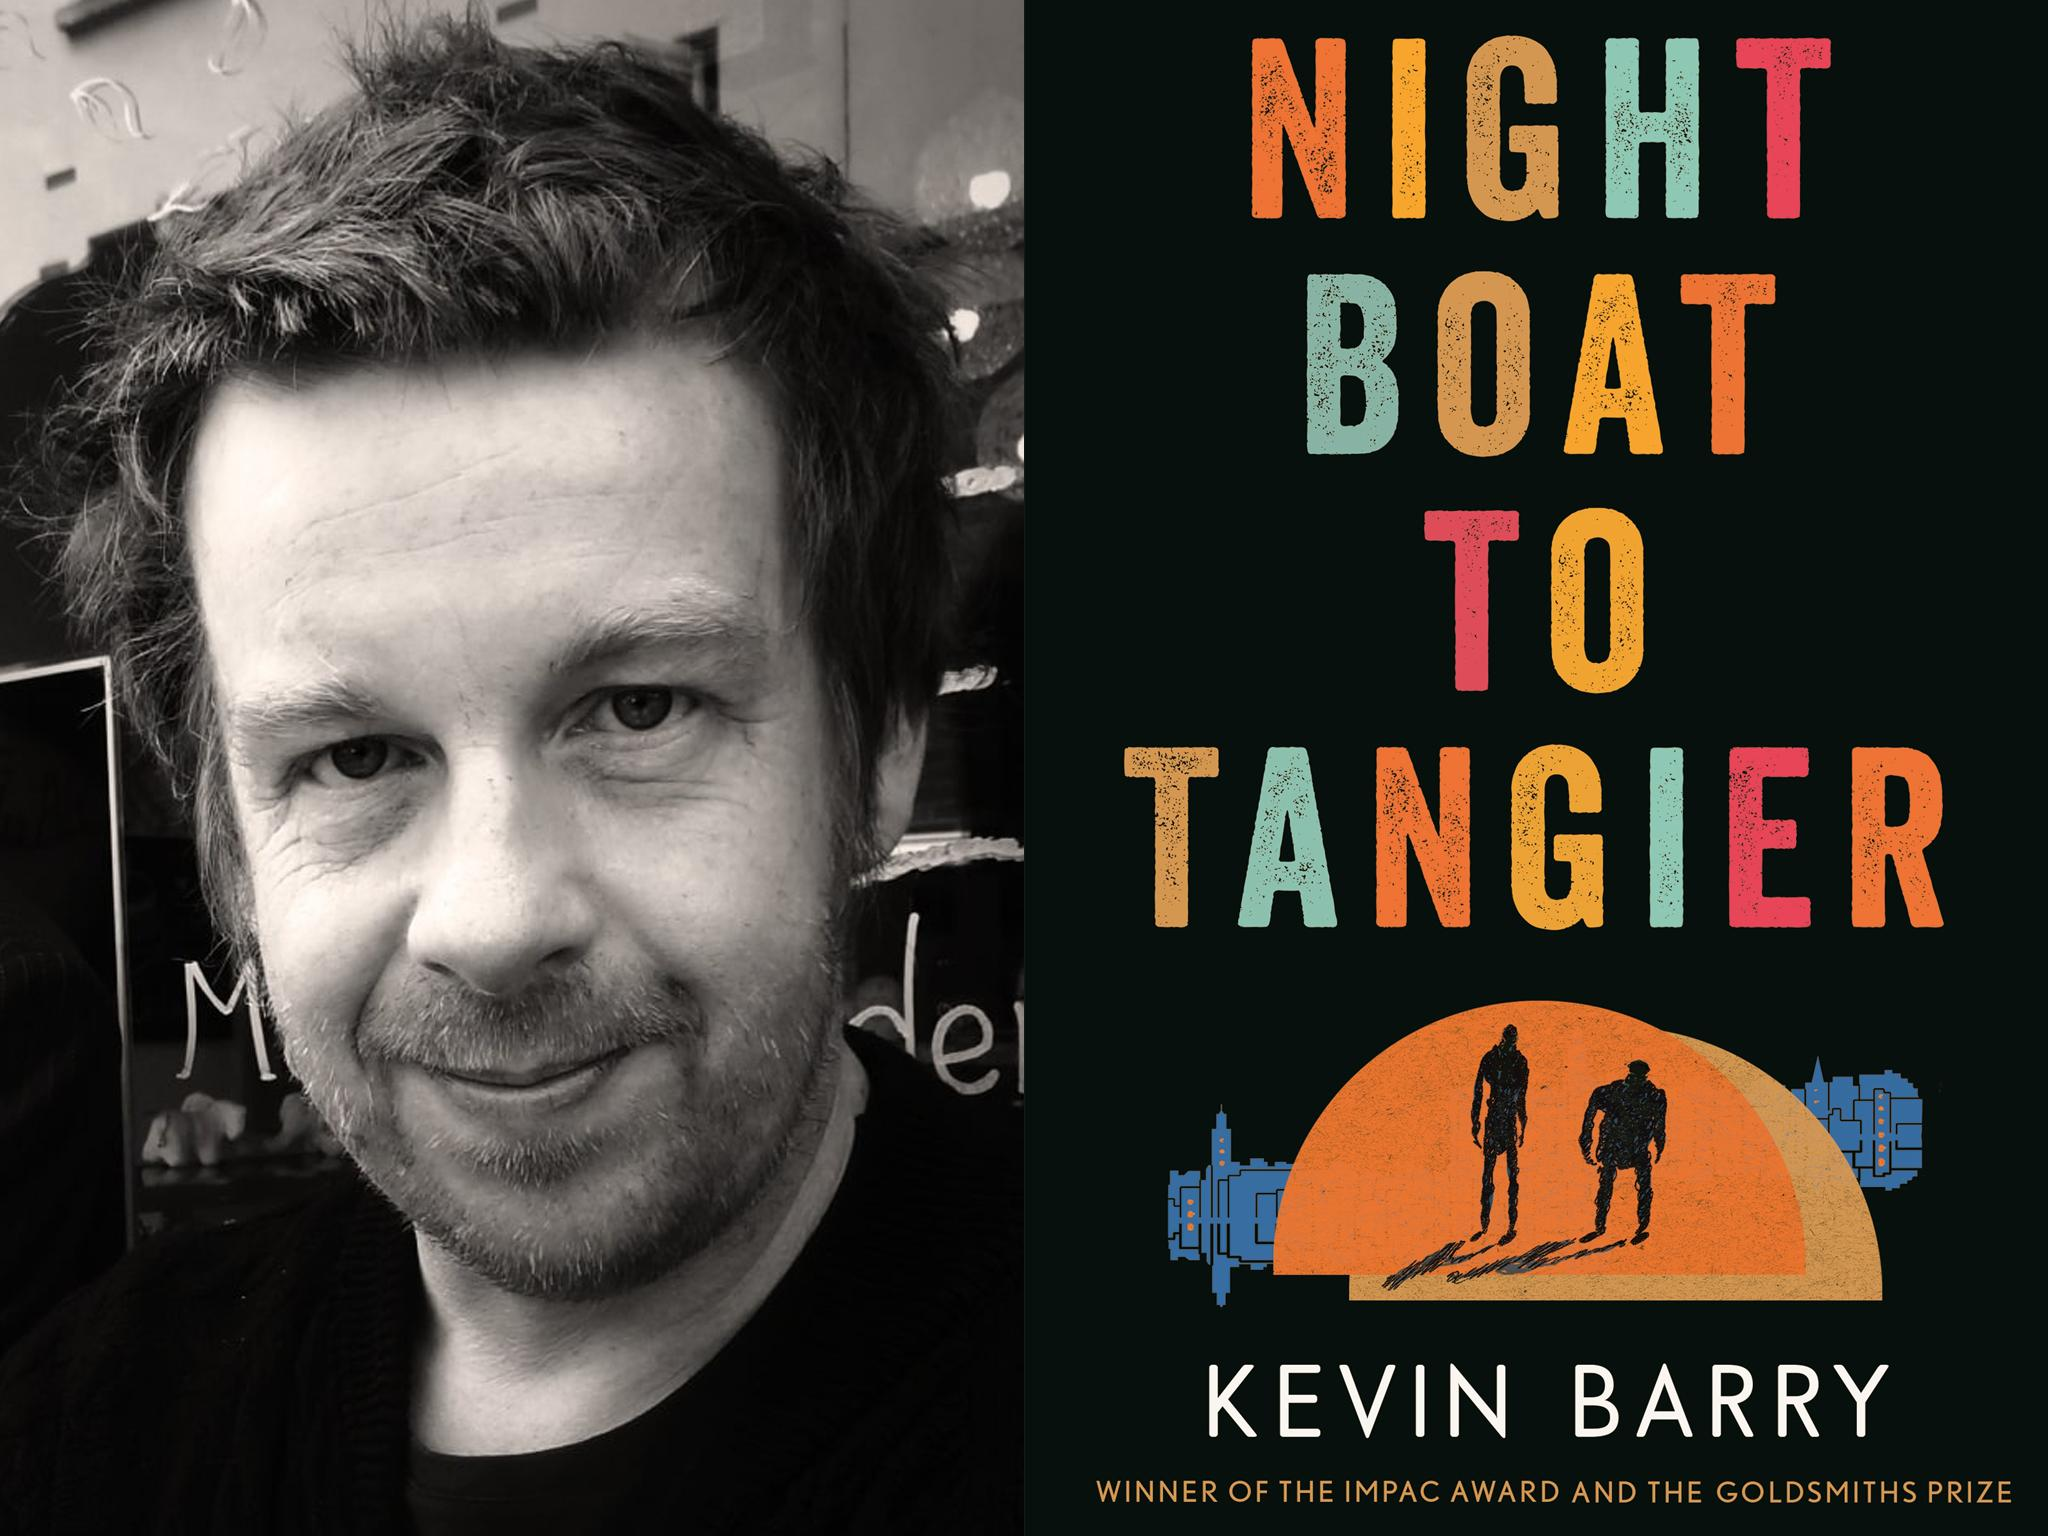 Night Boat to Tangier by Kevin Barry, book review: Captures male friendship with rare brilliance